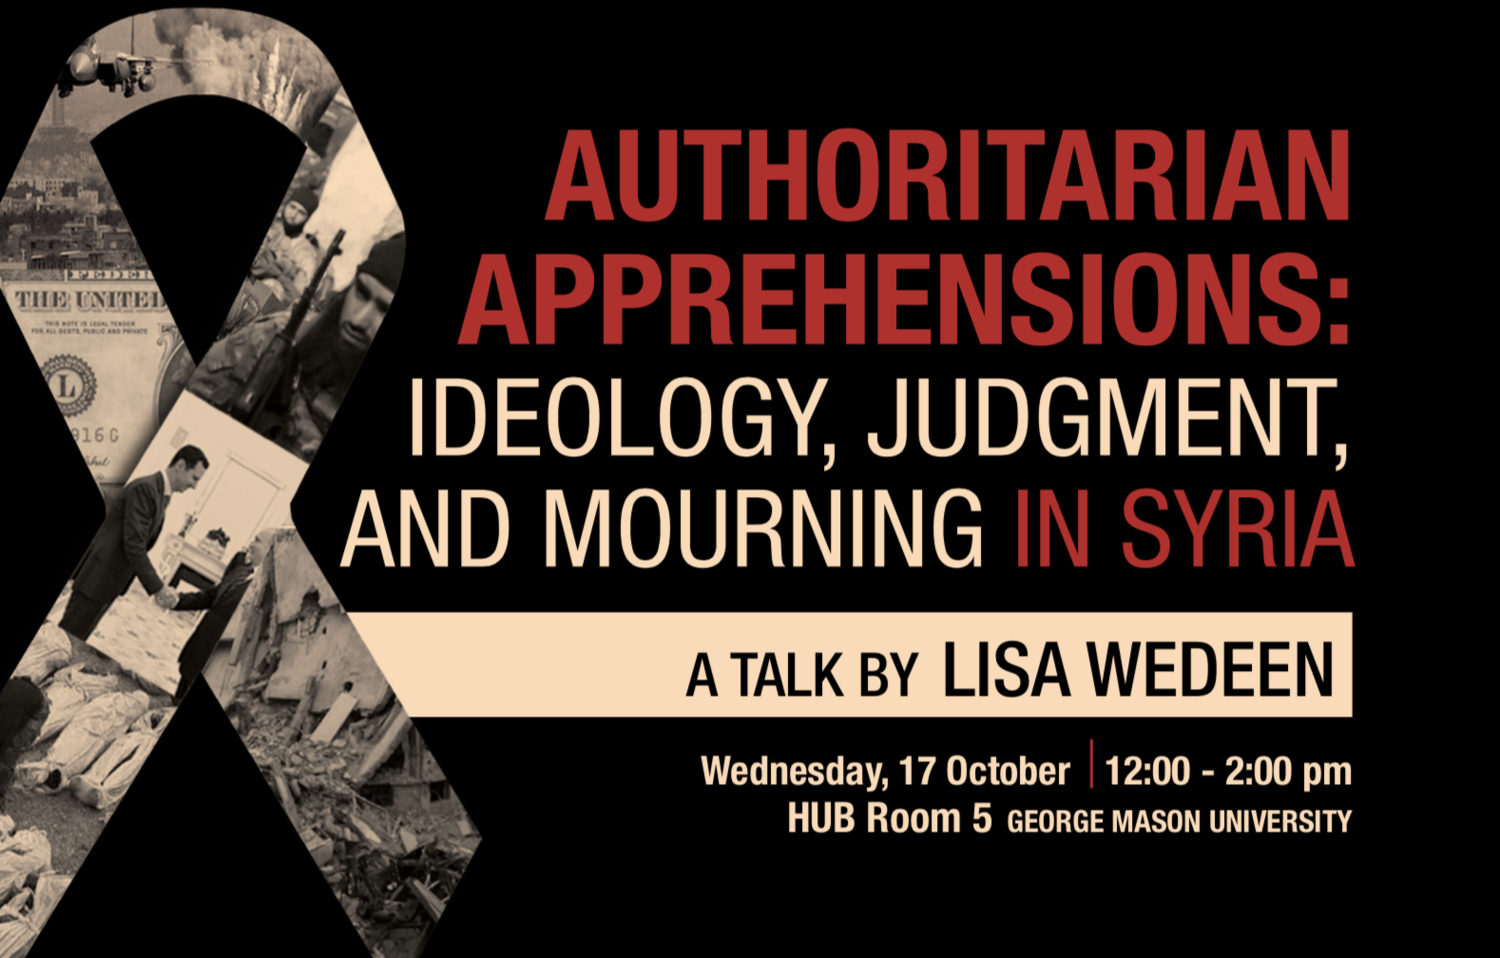 Authoritarian Apprehensions: Ideology, Judgment, and Mourning in Syria - A Talk by Lisa Wedeen (17 October)